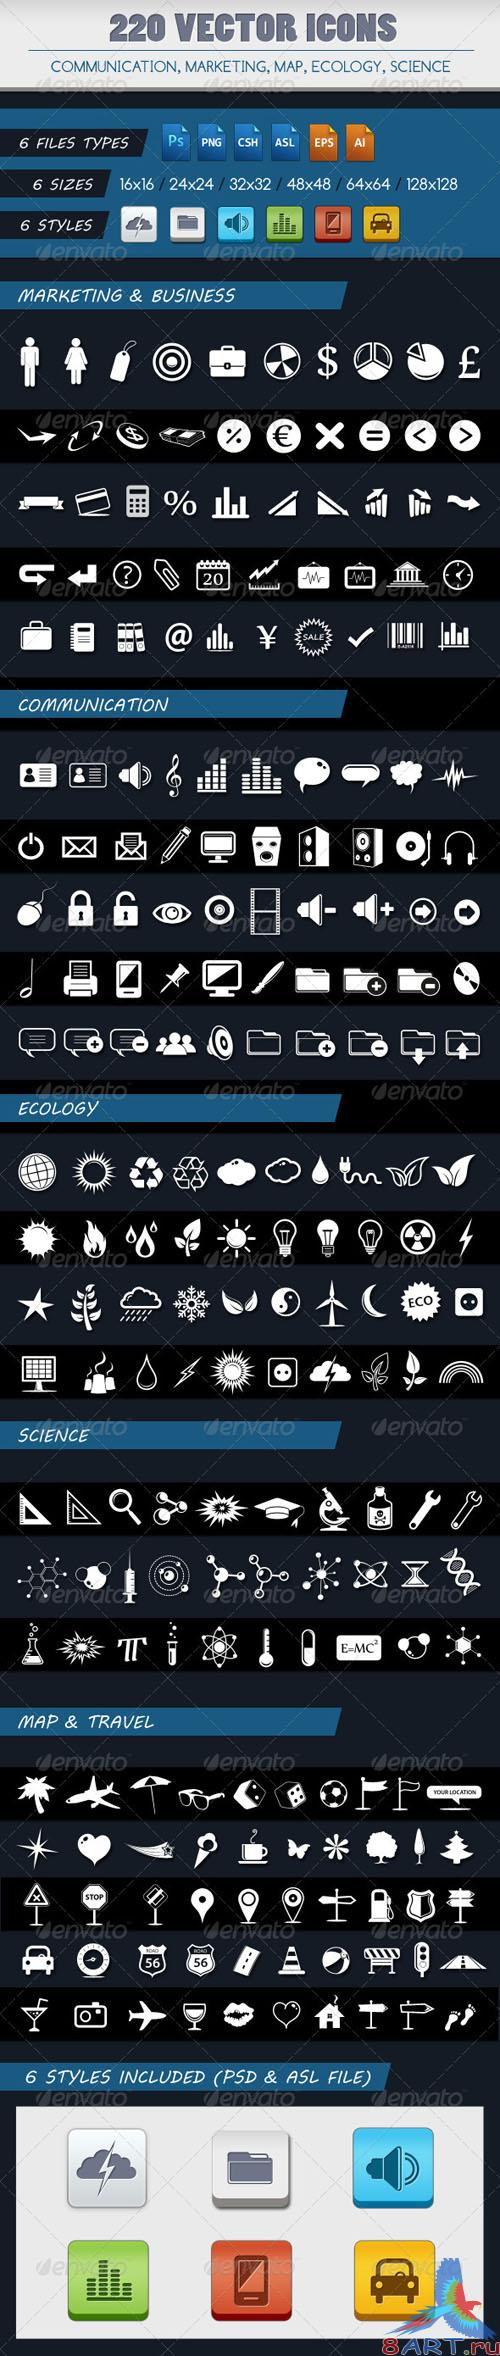 GraphicRiver - 220 VECTOR ICONS OF 5 CATEGORIES 2498338